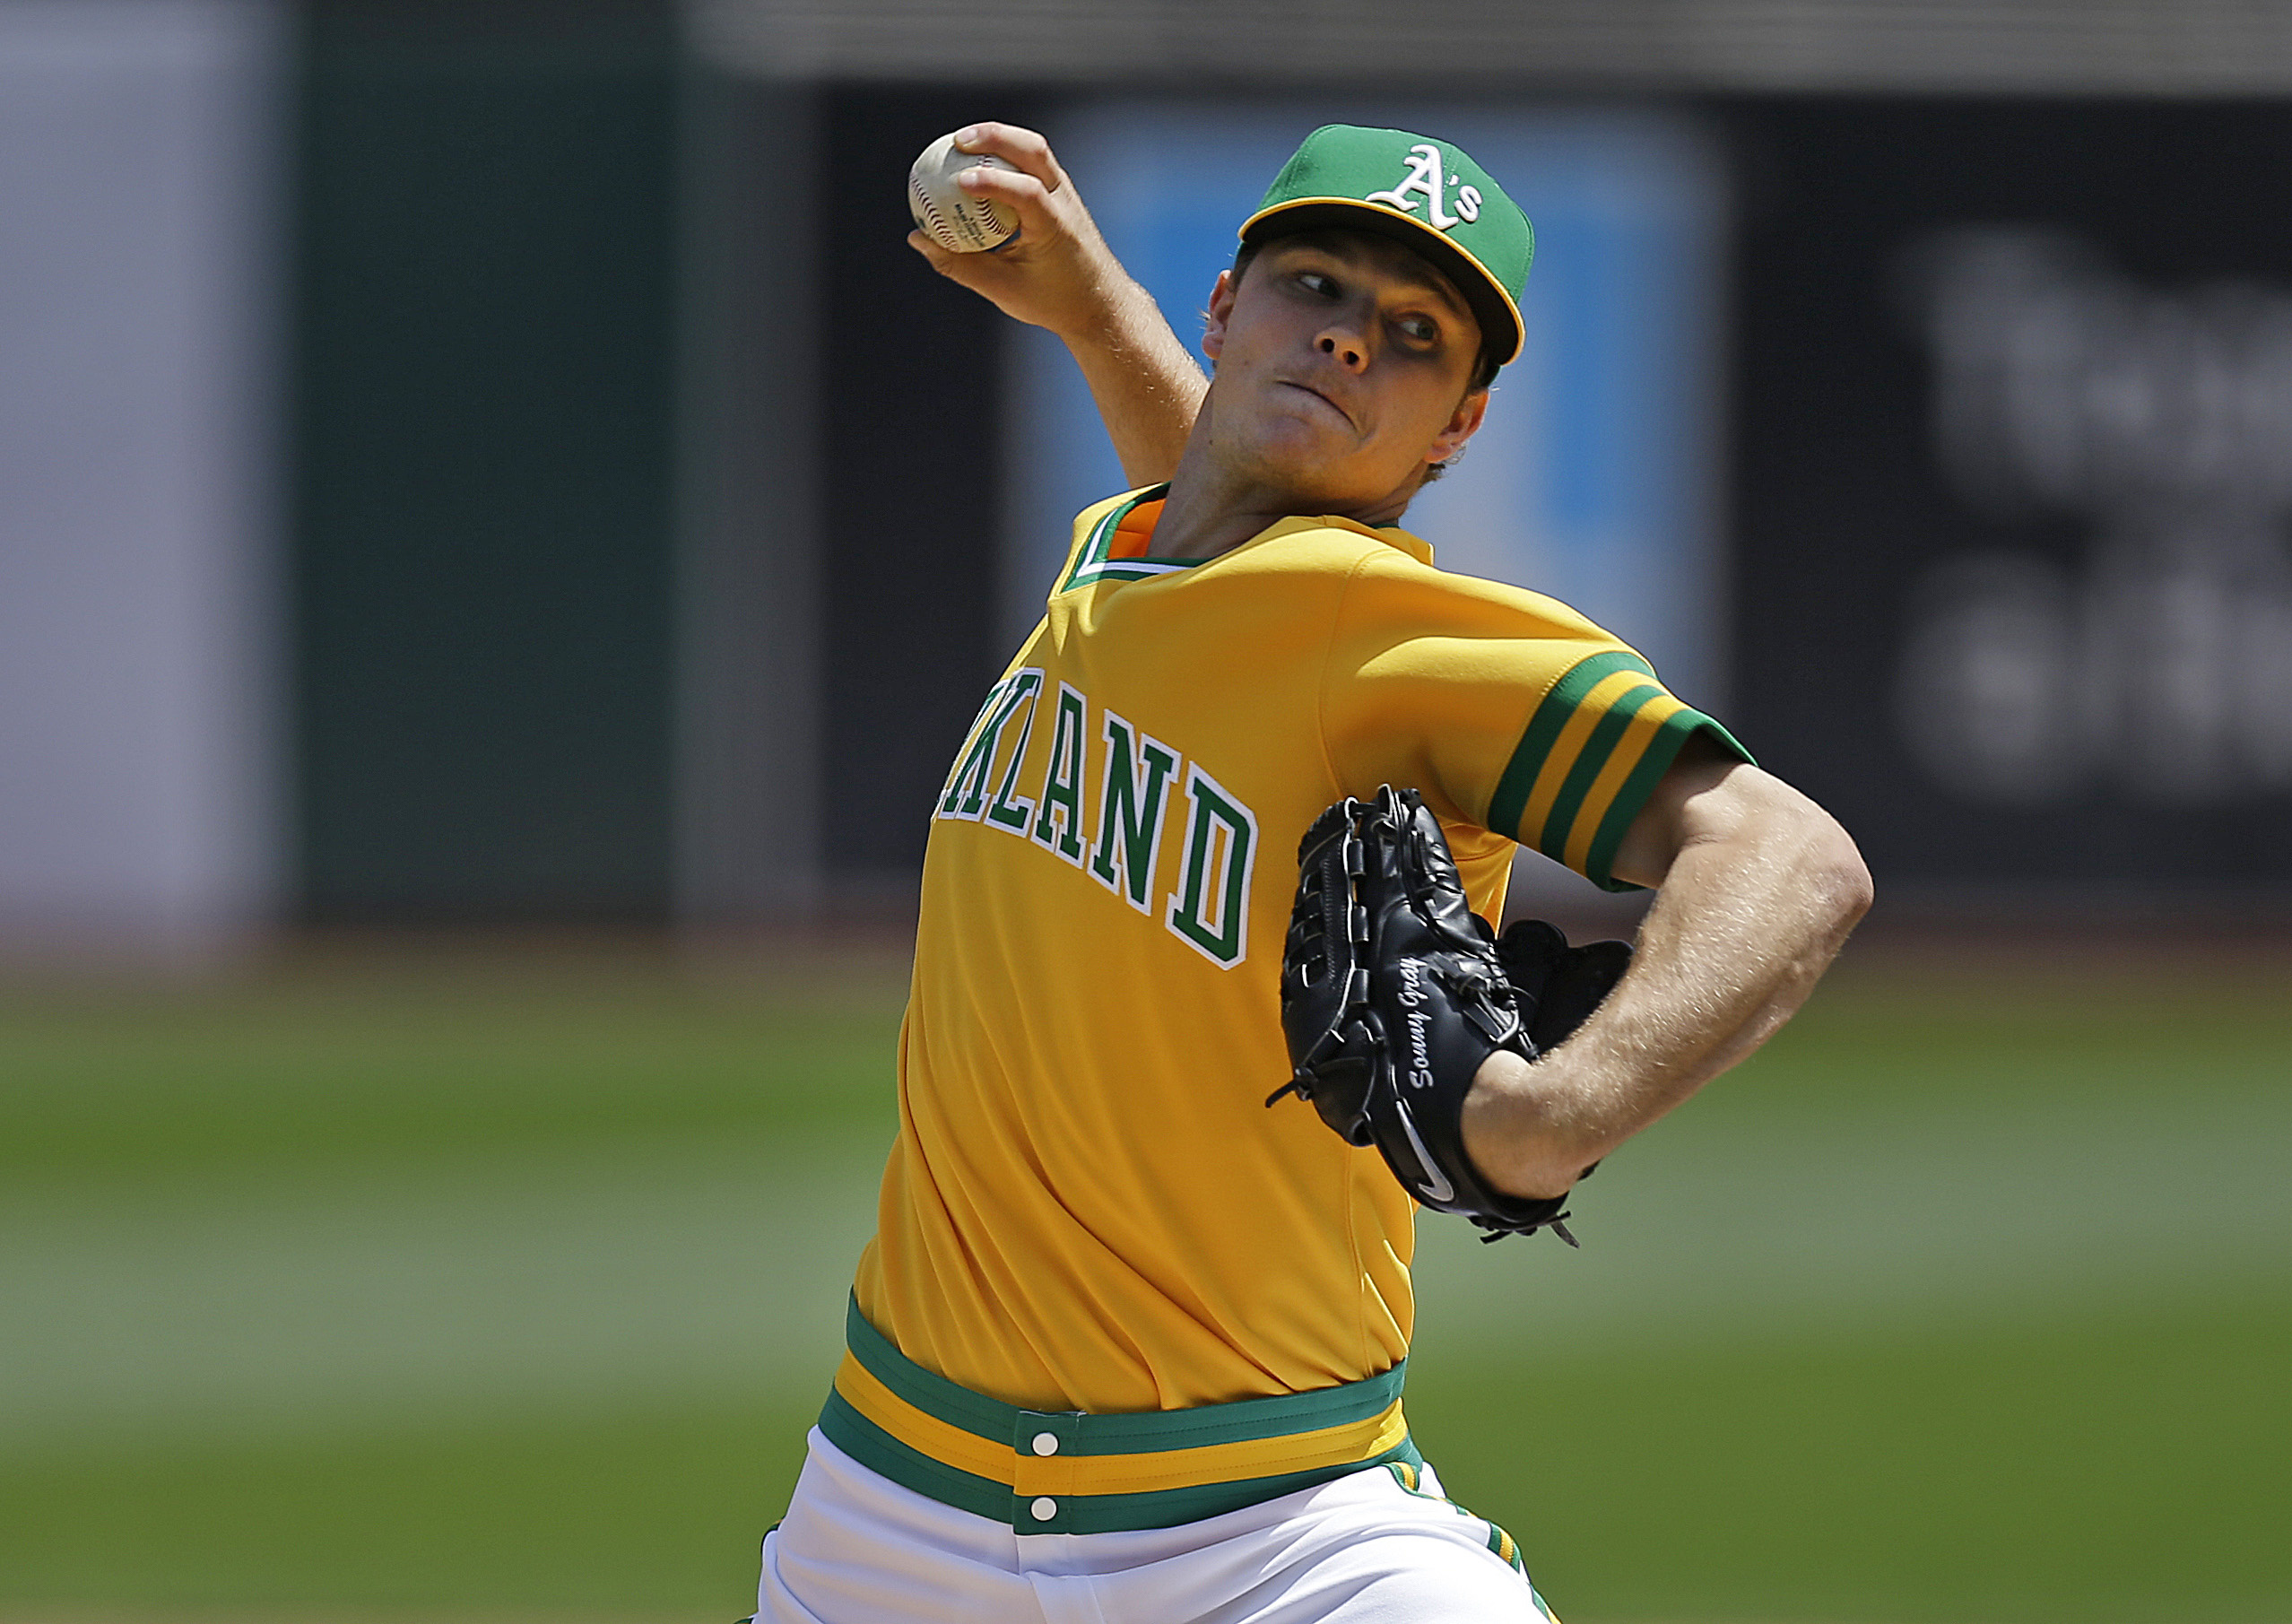 Oakland Athletics pitcher Sonny Gray works against the Chicago Cubs in the first inning of a baseball game Saturday, Aug. 6, 2016, in Oakland, Calif. (AP Photo/Ben Margot)